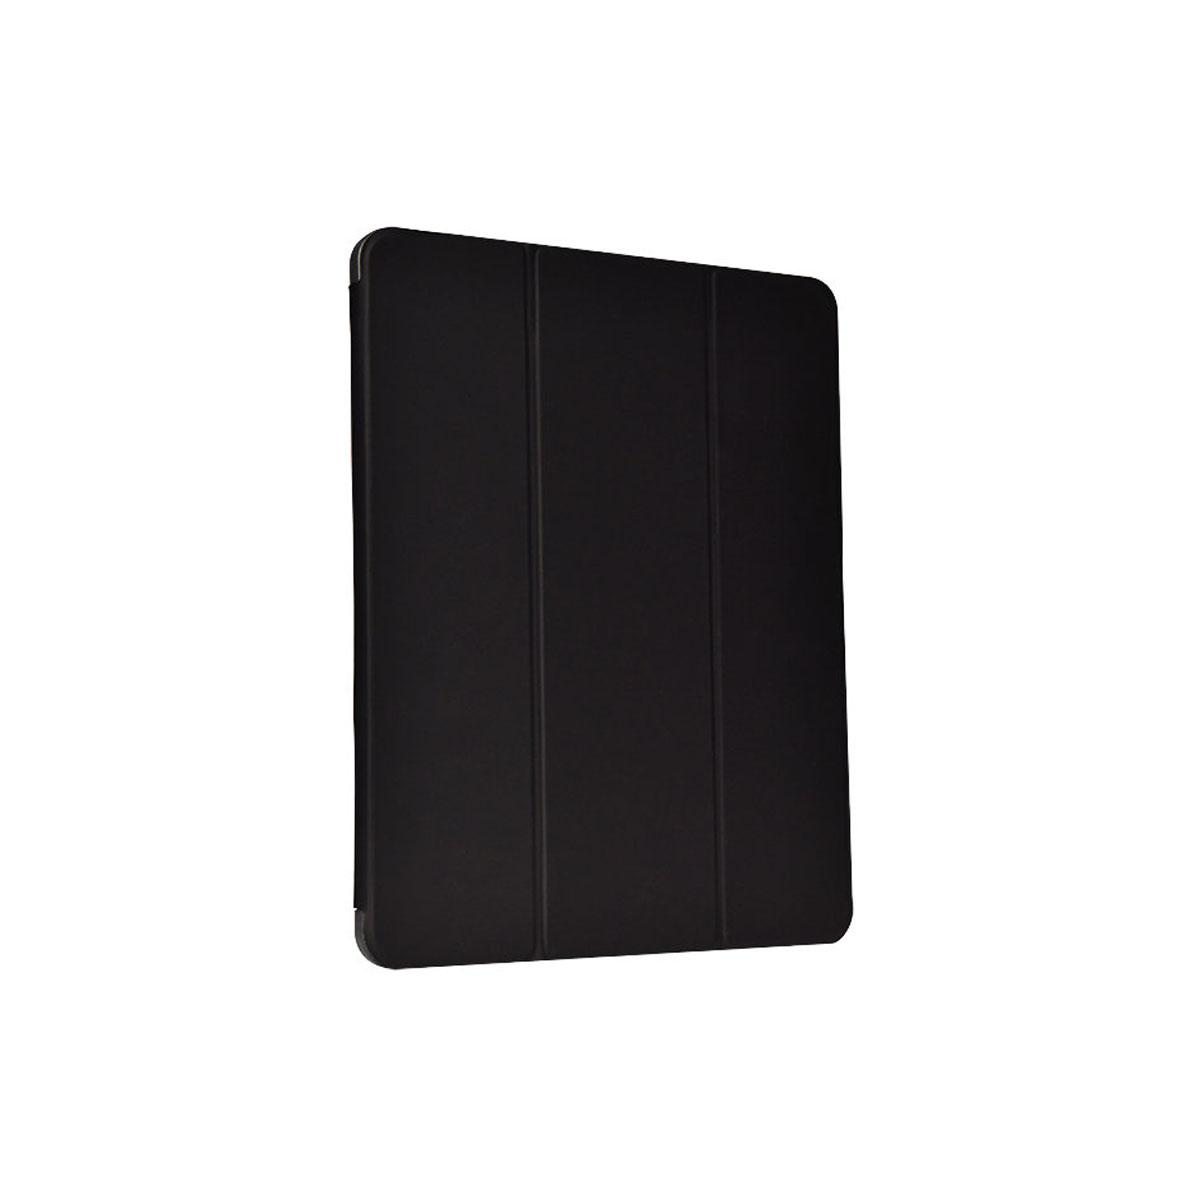 Devia iPad Air 4 10.9-inch Leather Case with Pencil Slot -Black